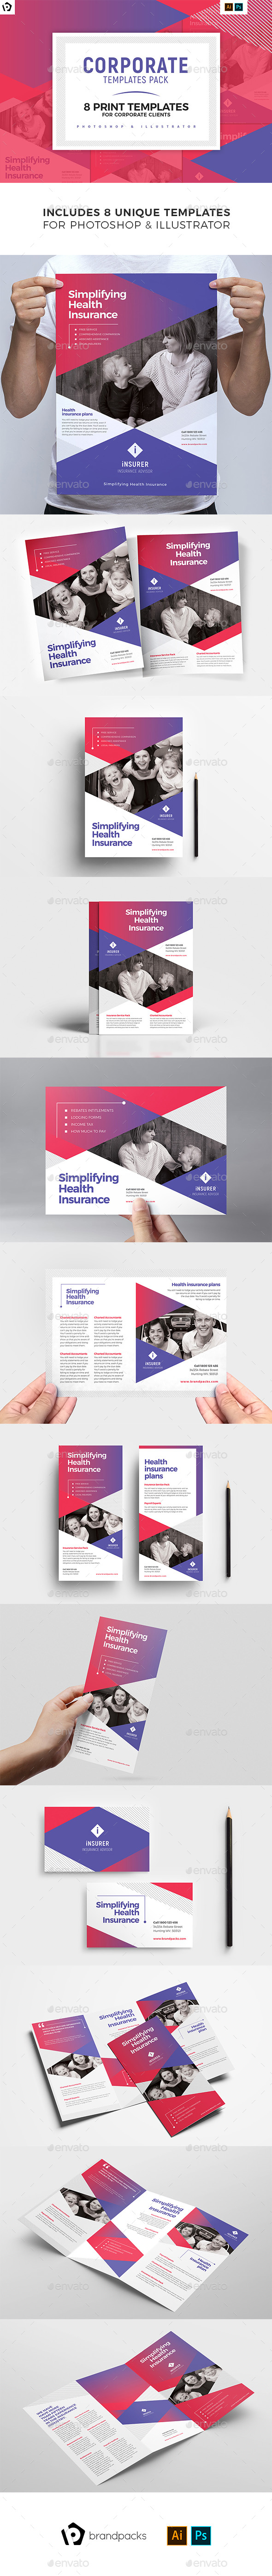 Corporate Templates Bundle - Corporate Flyers